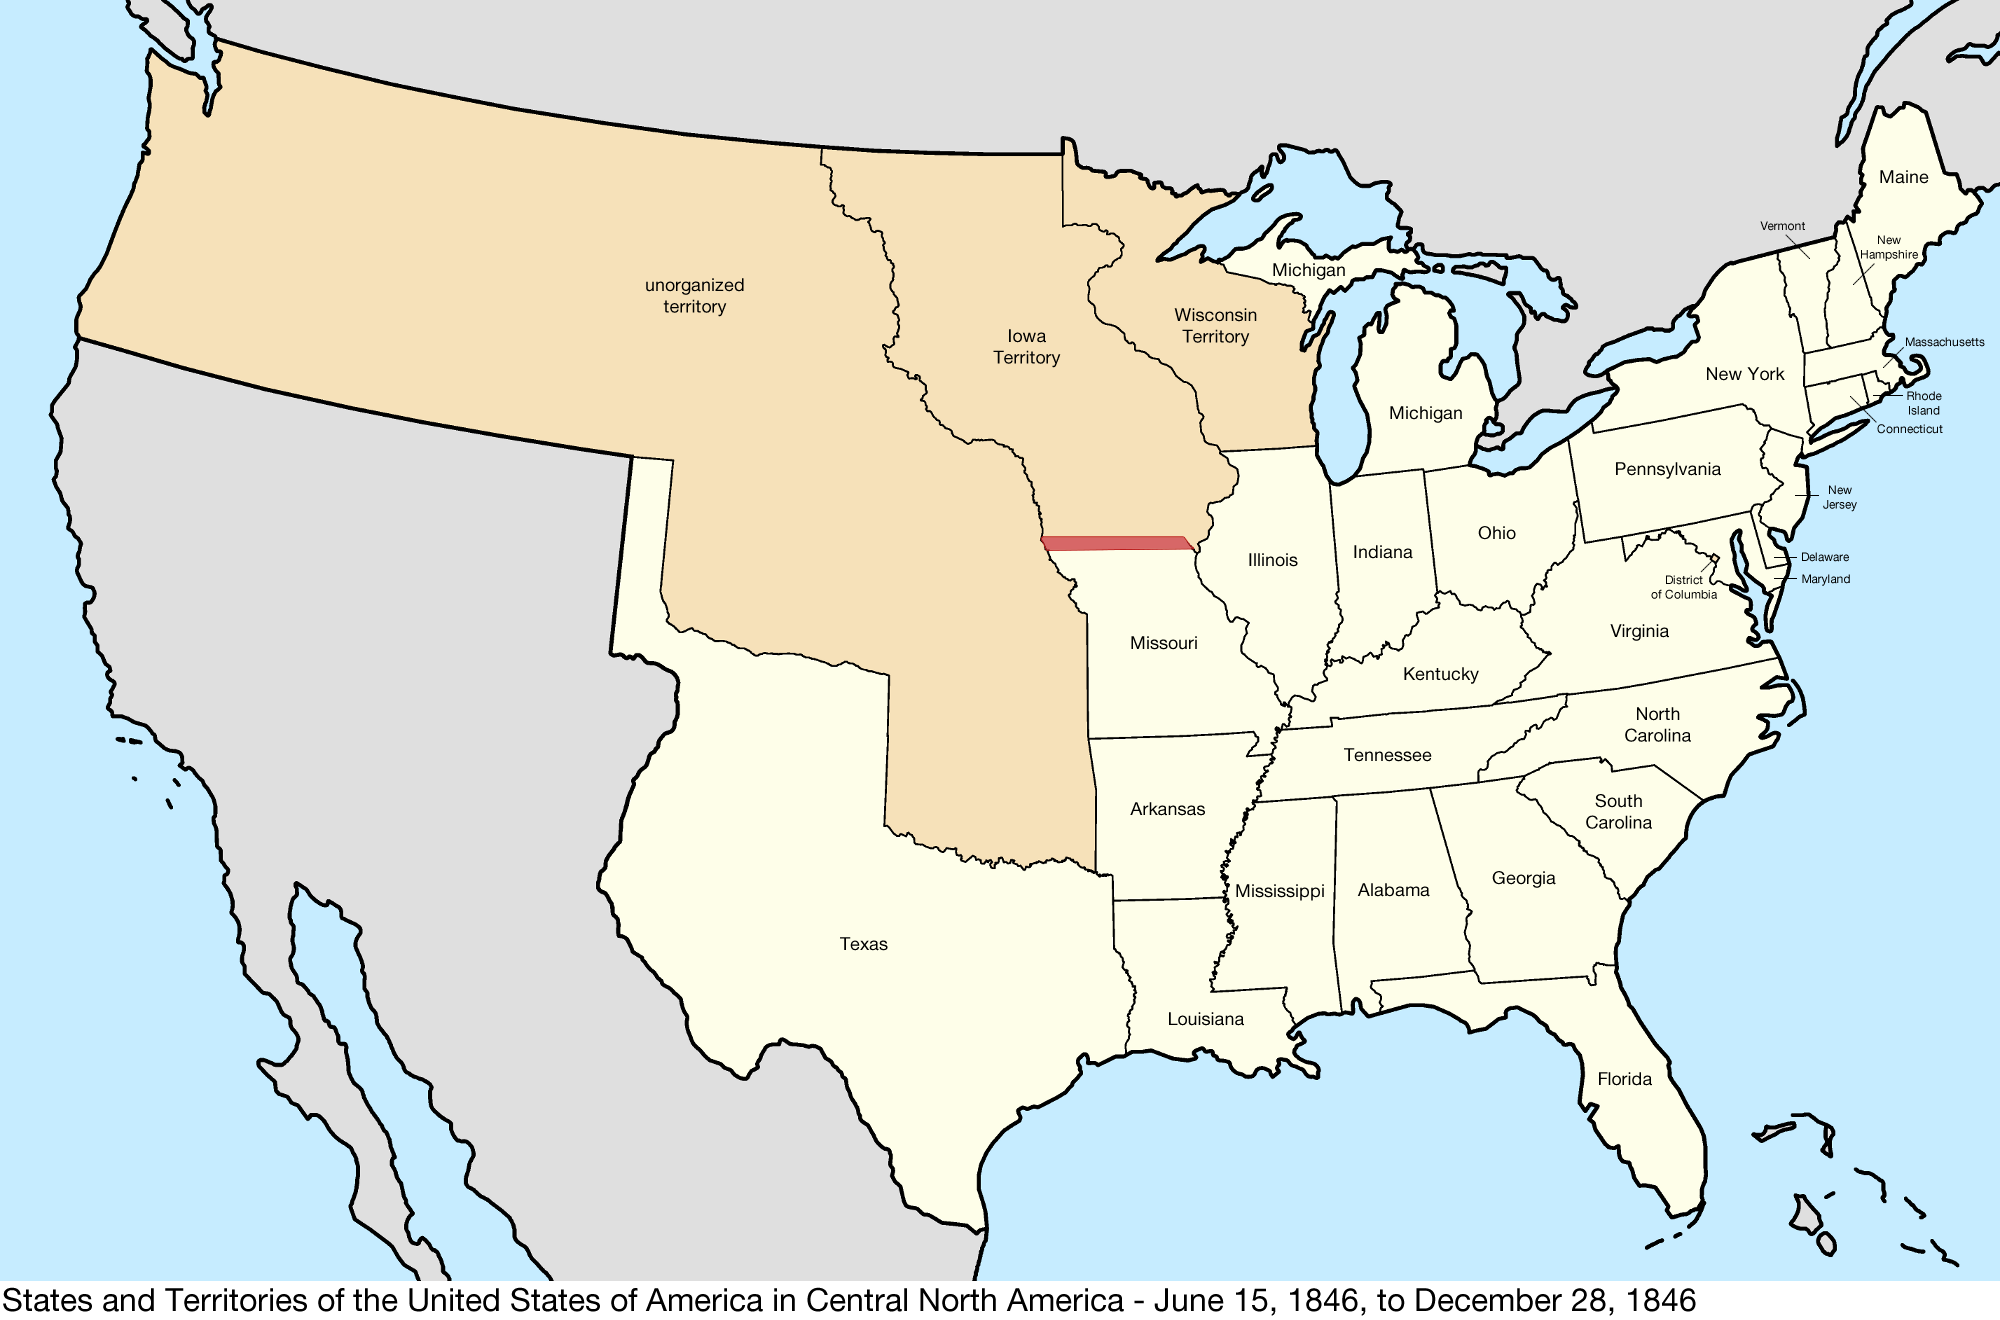 Map Of Us In 1846 File:United States Central map 1846 06 15 to 1846 12 28.png